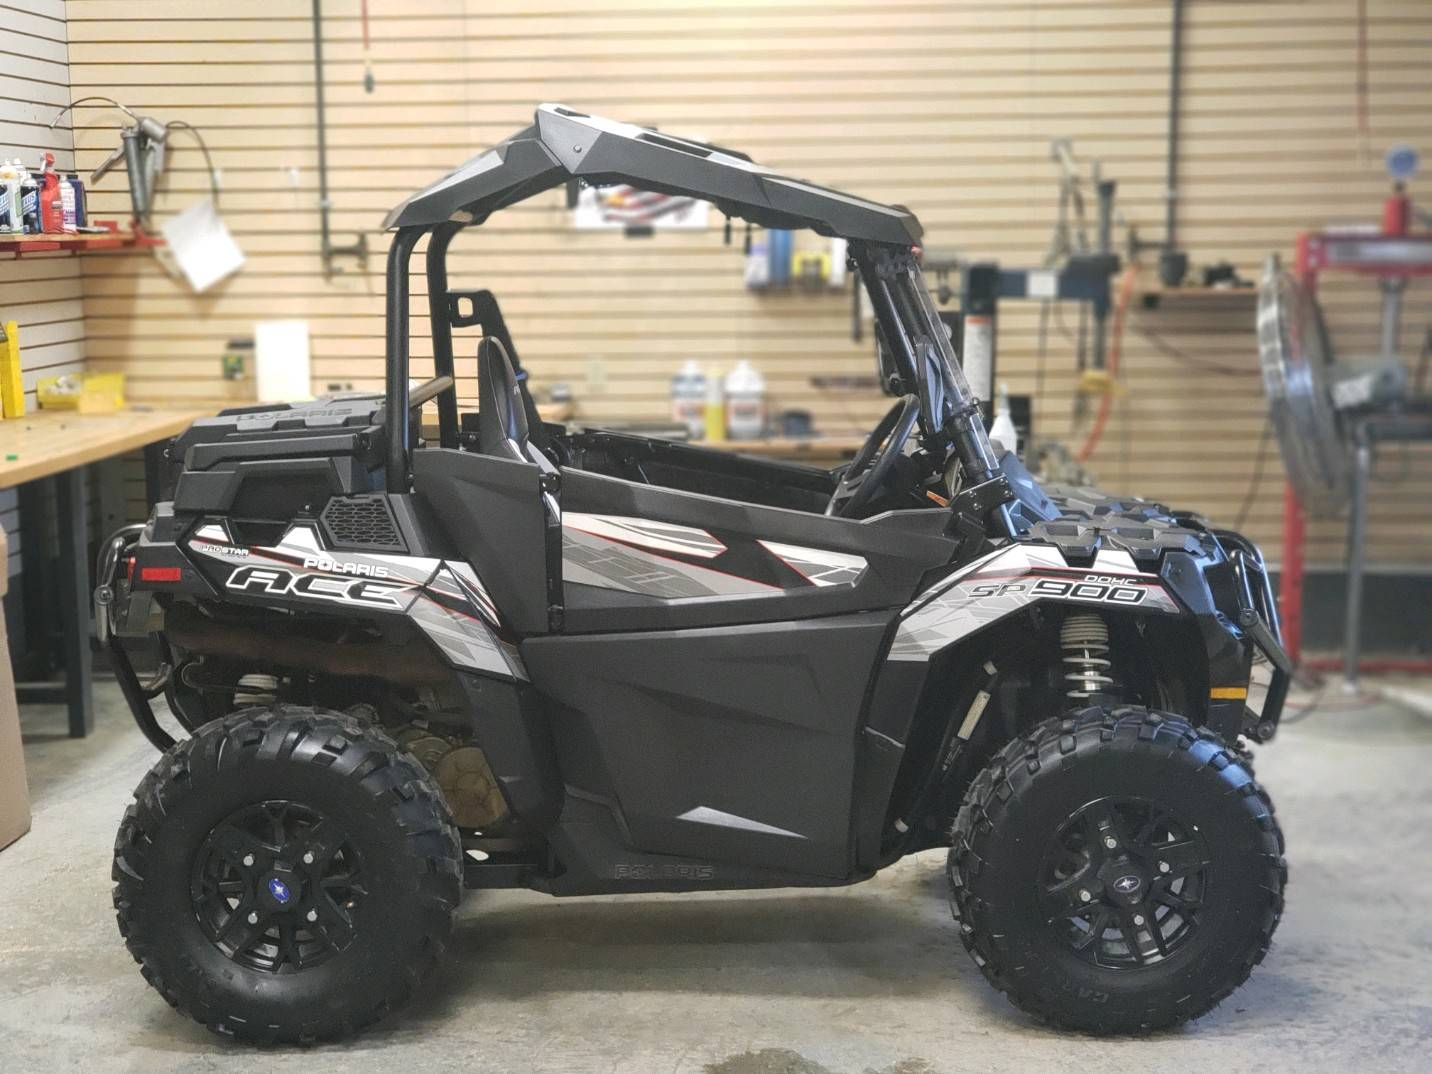 2016 Polaris ACE 900 SP in Beaver Falls, Pennsylvania - Photo 6